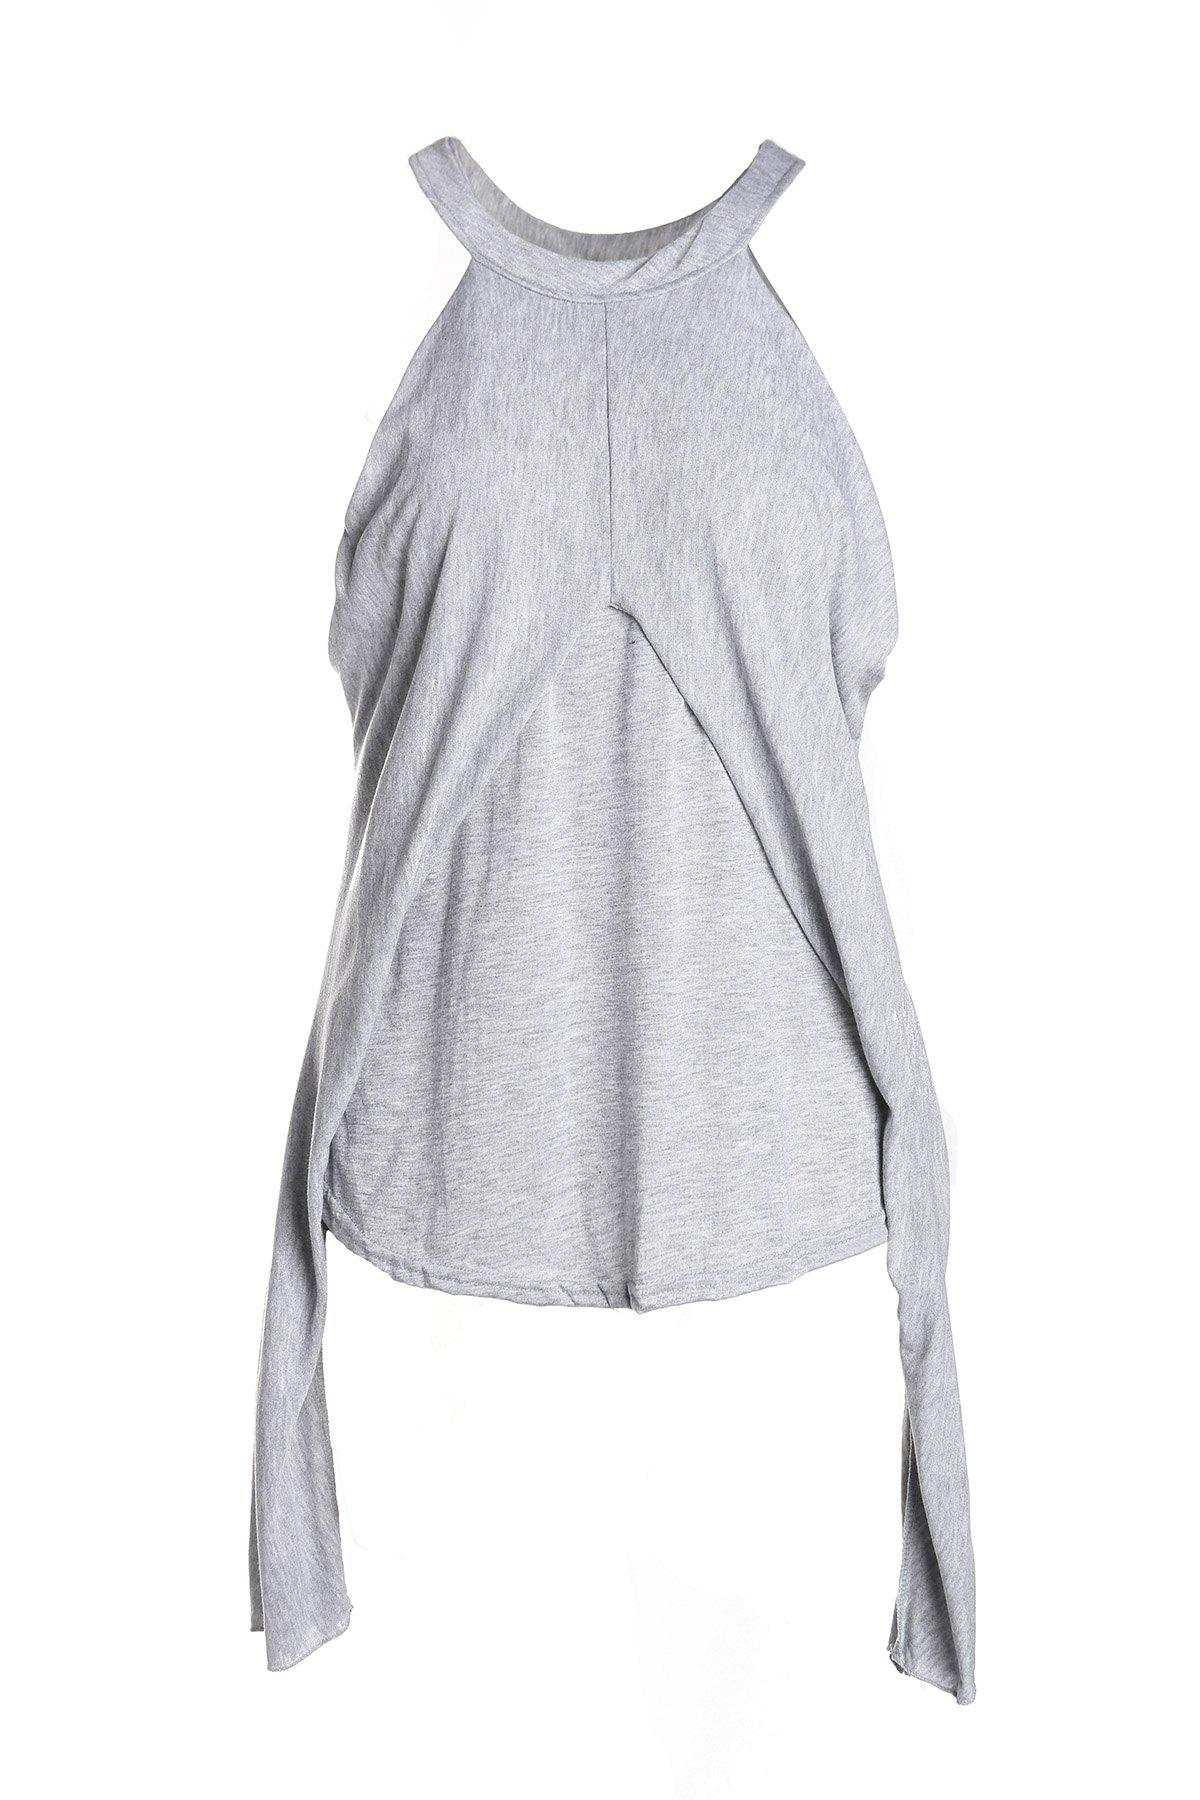 Stylish Round Neck Long Sleeve Off-The-Shoulder Womens T-ShirtWomen<br><br><br>Size: ONE SIZE(FIT SIZE XS TO M)<br>Color: GRAY